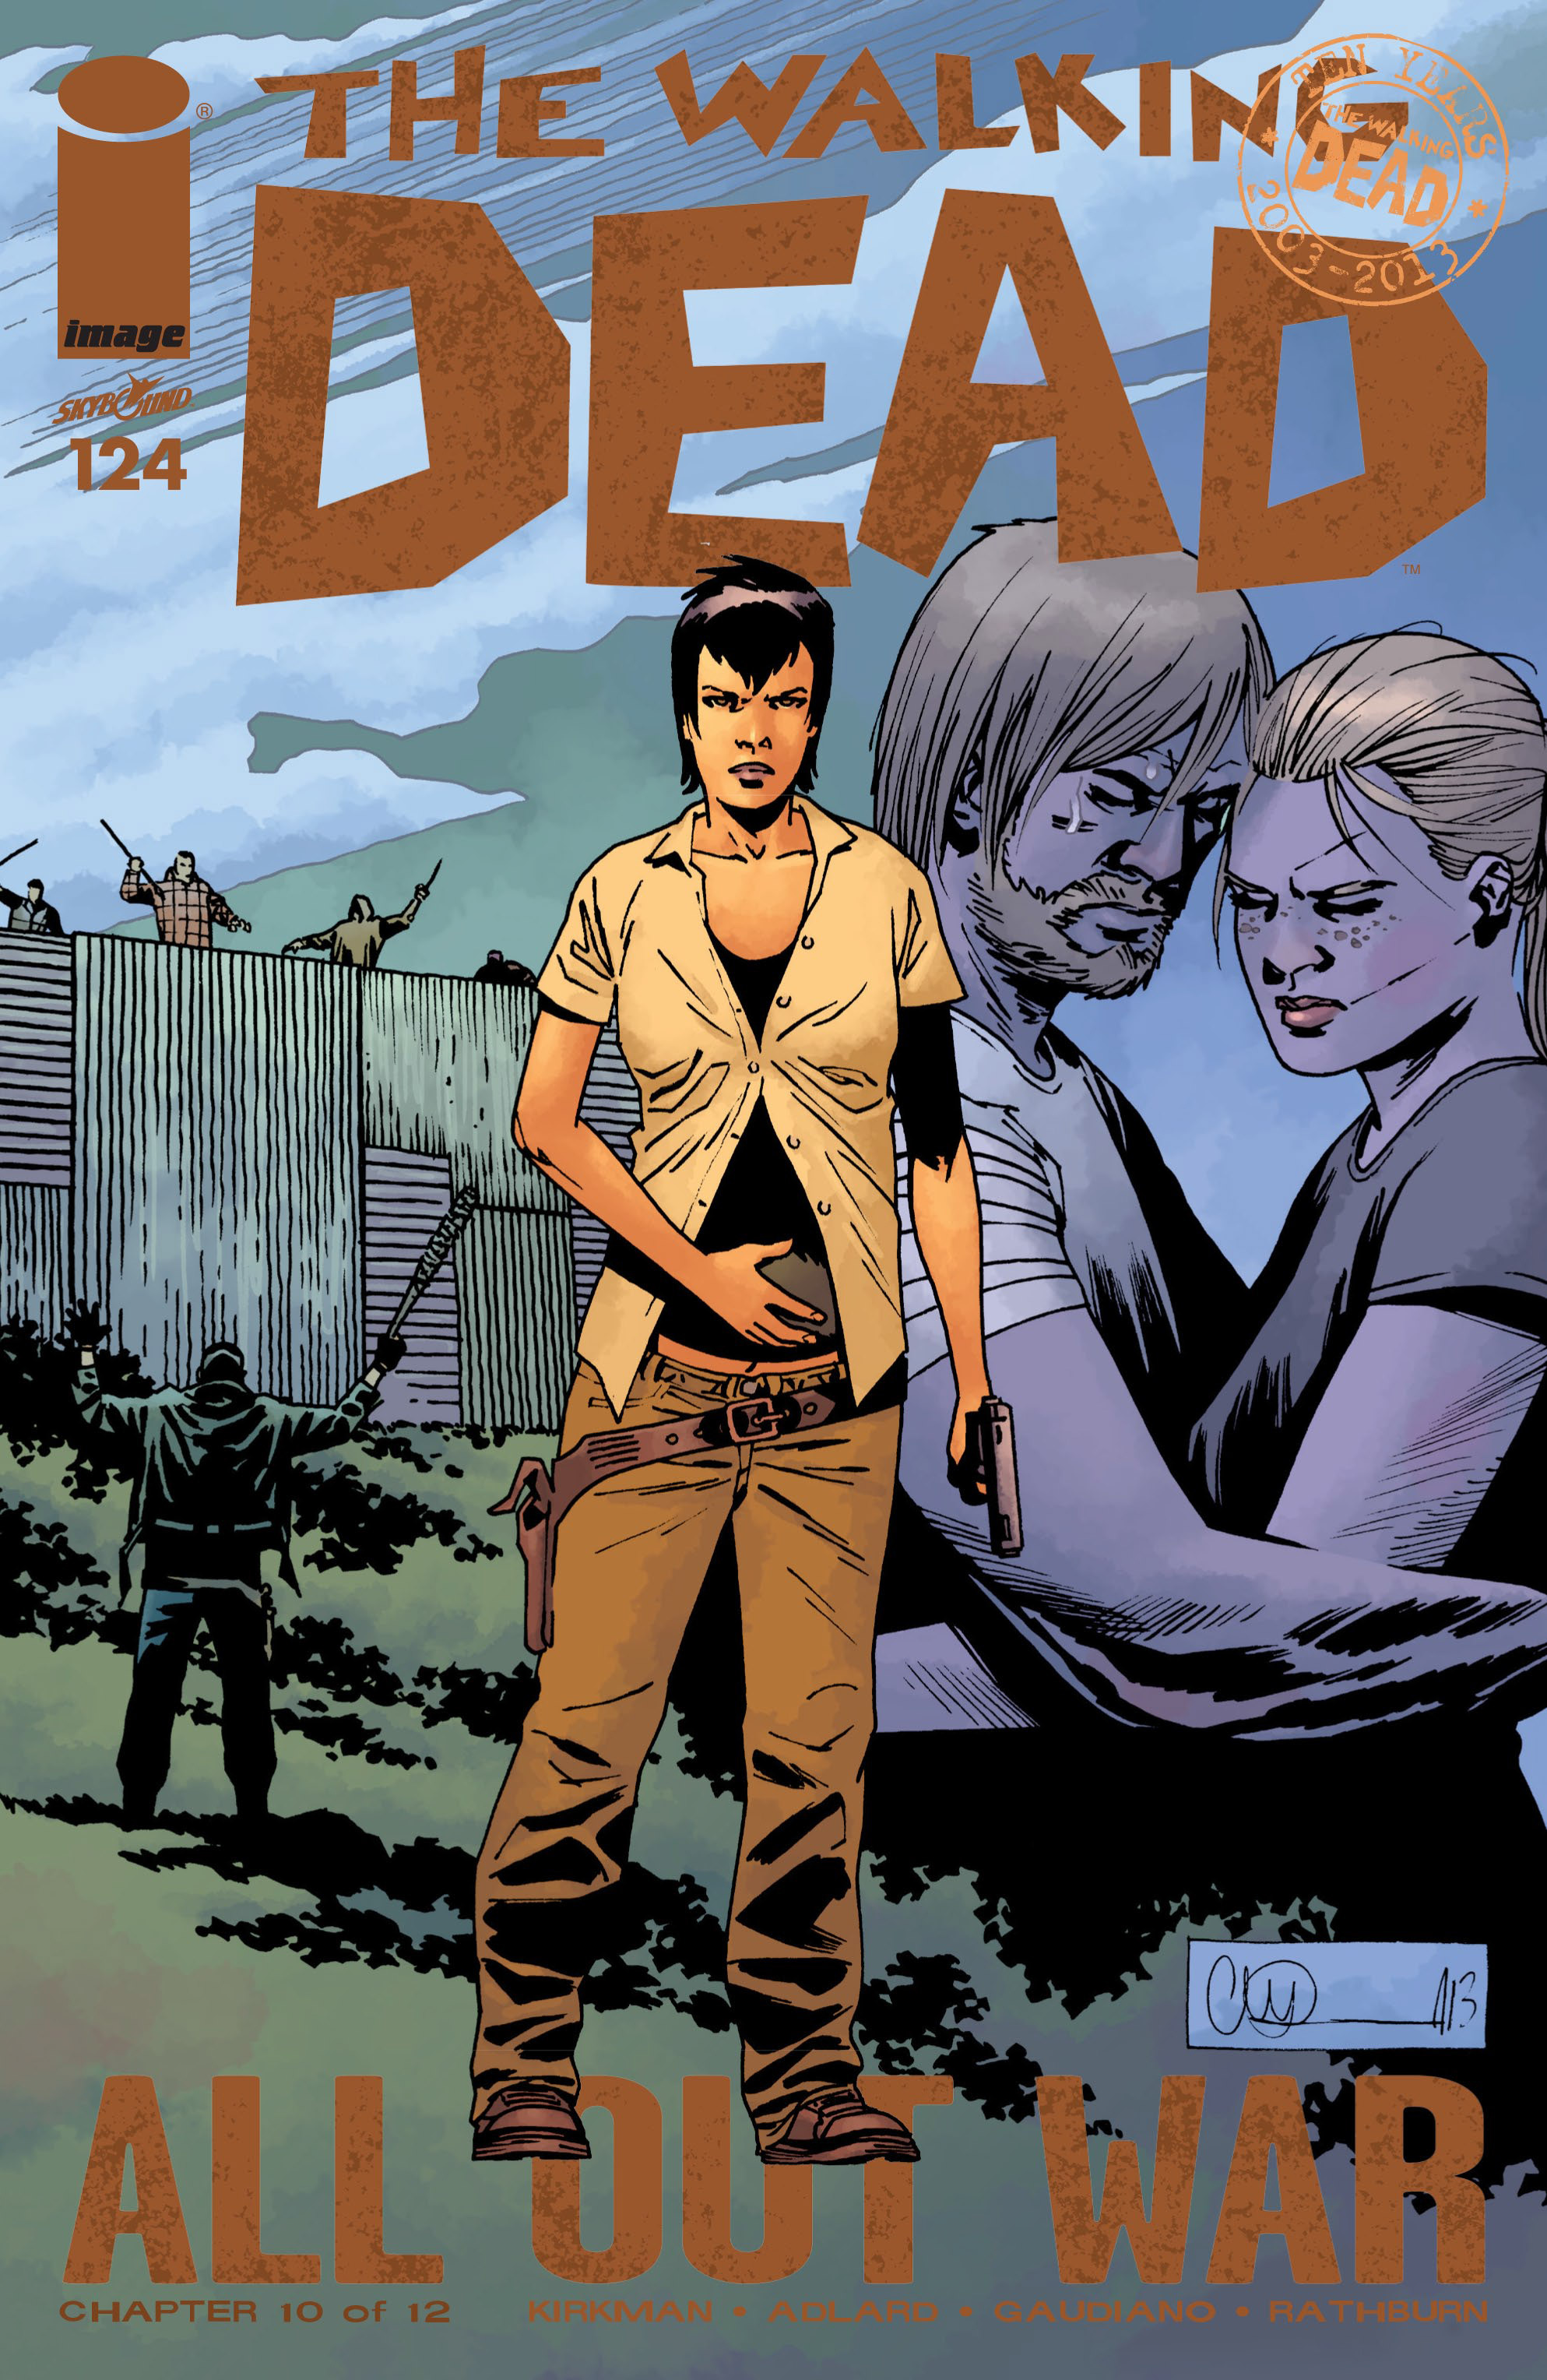 The Walking Dead 124 Page 1